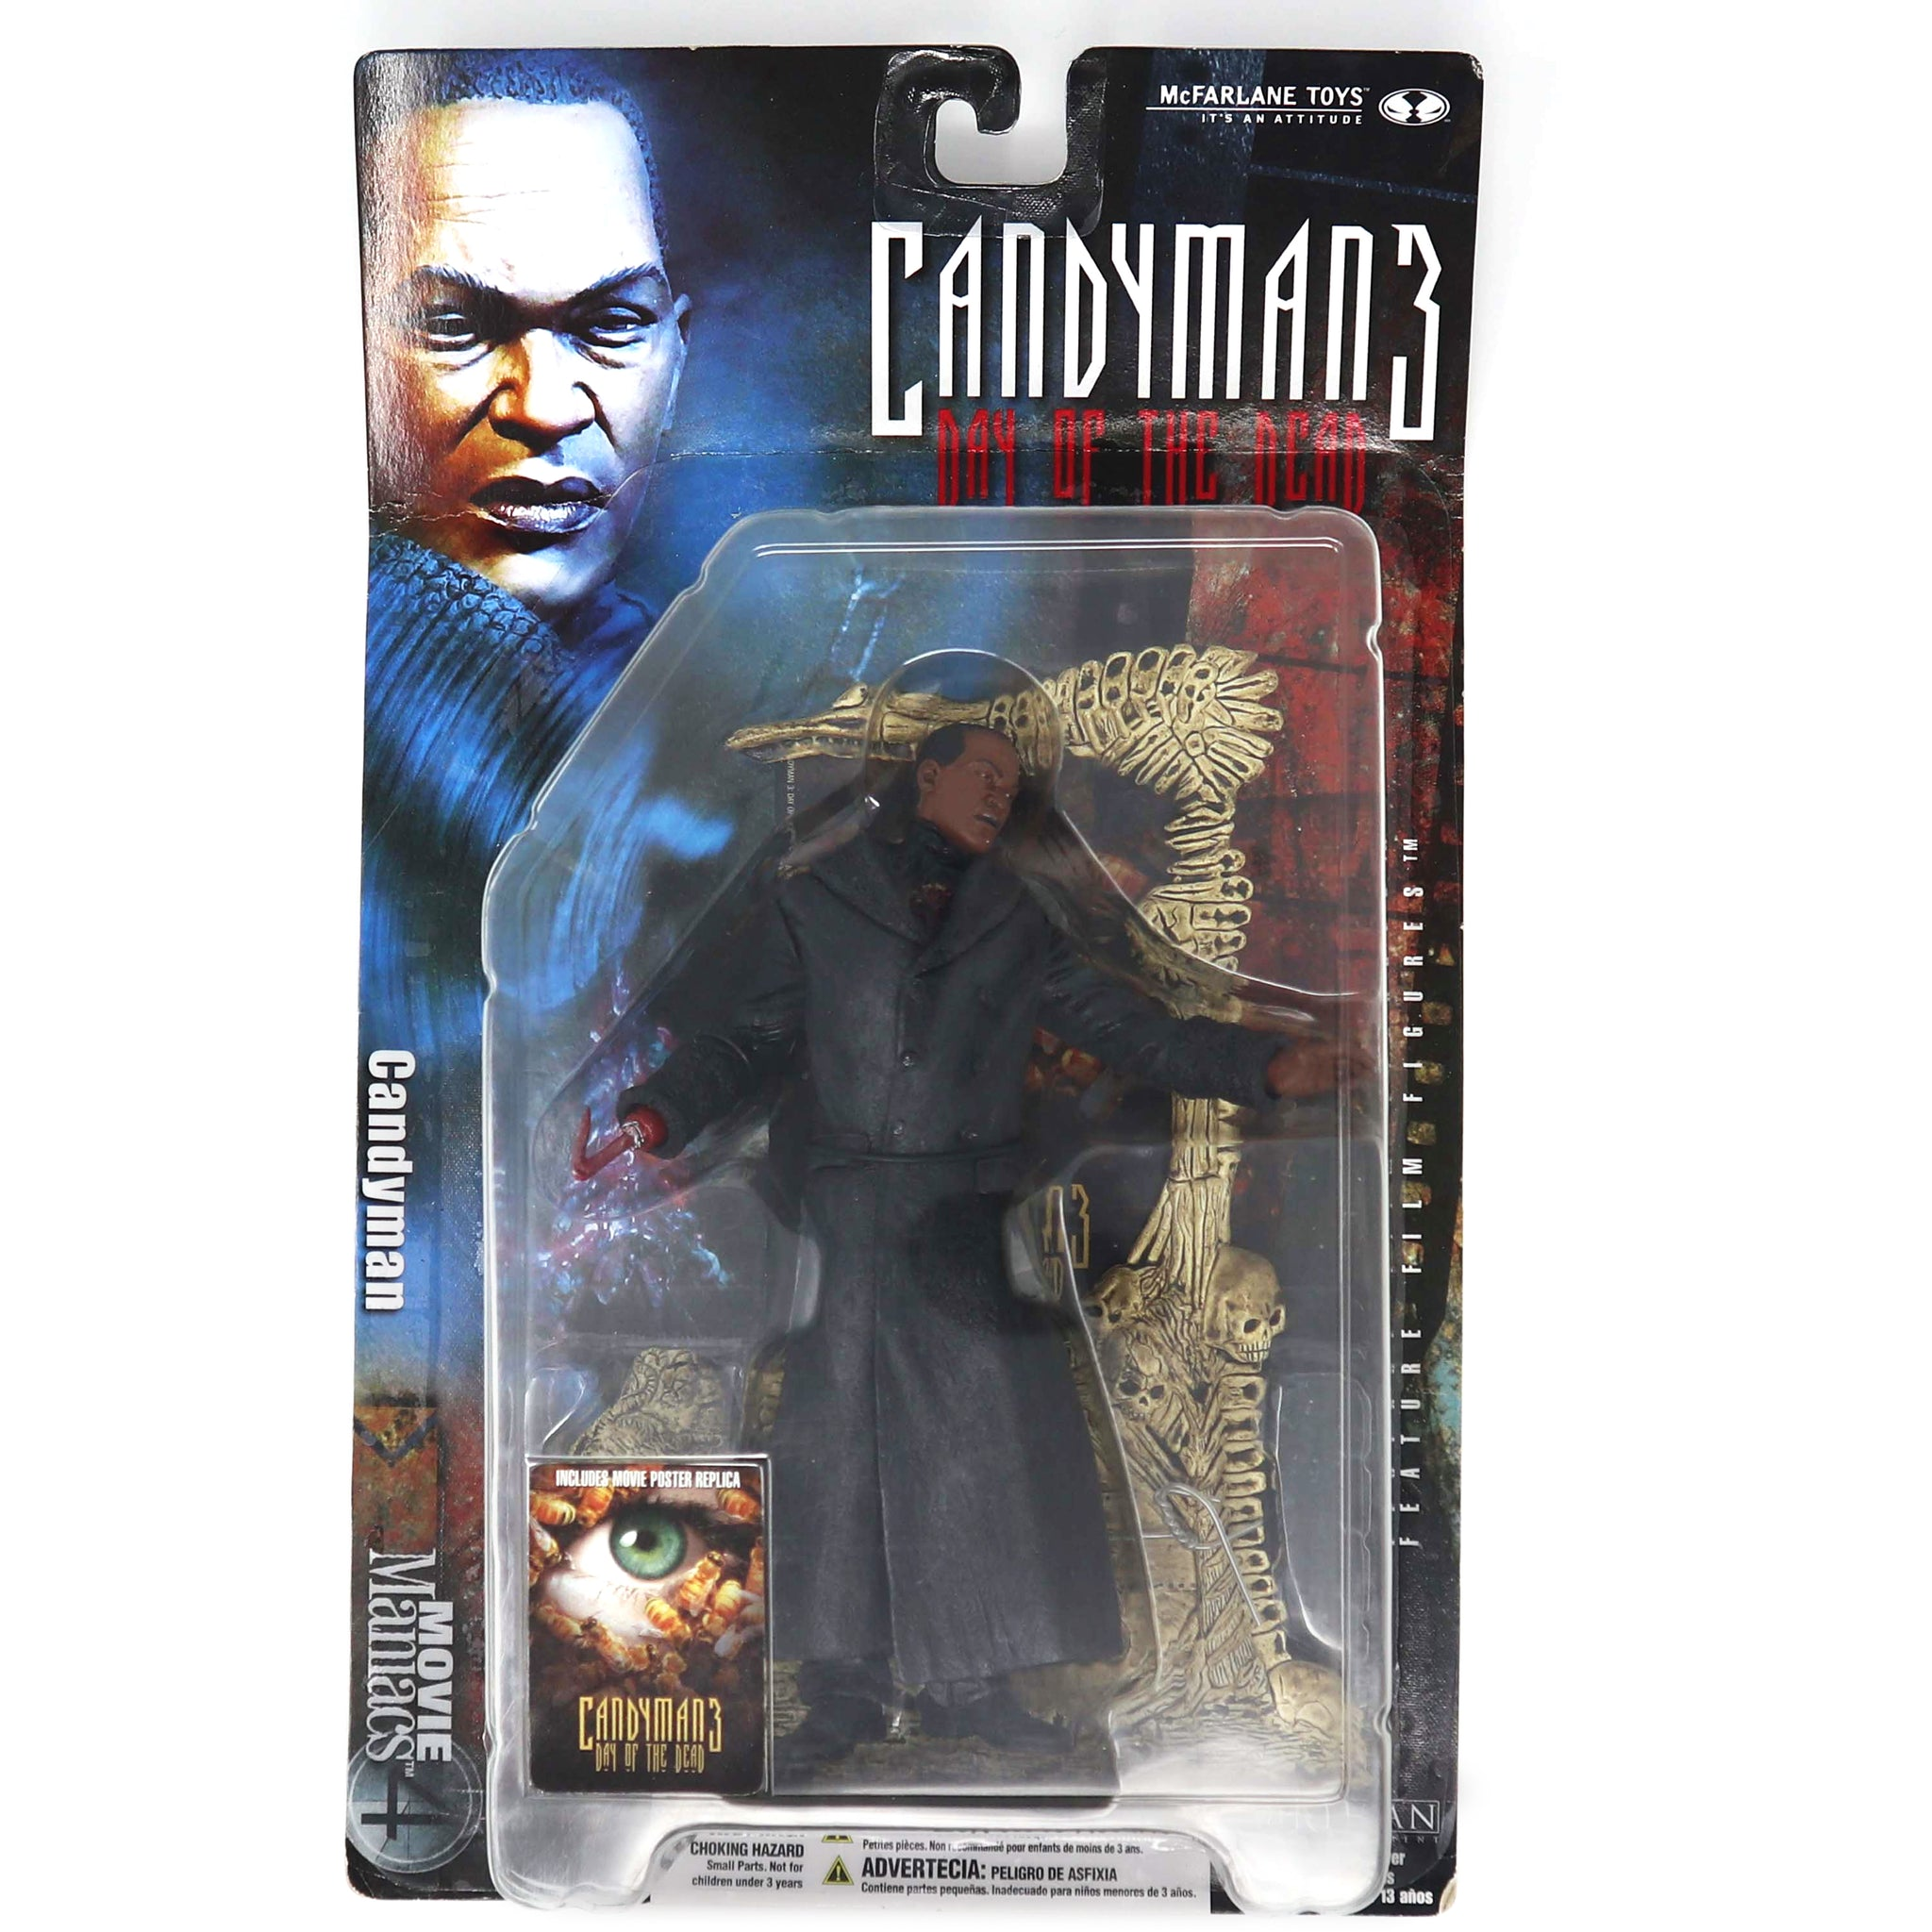 "Vintage 2001 McFarlane Toys Movie Maniacs 4 Candyman 3 Day Of The Dead 7"" Feature Film Action Figure MOC Carded"